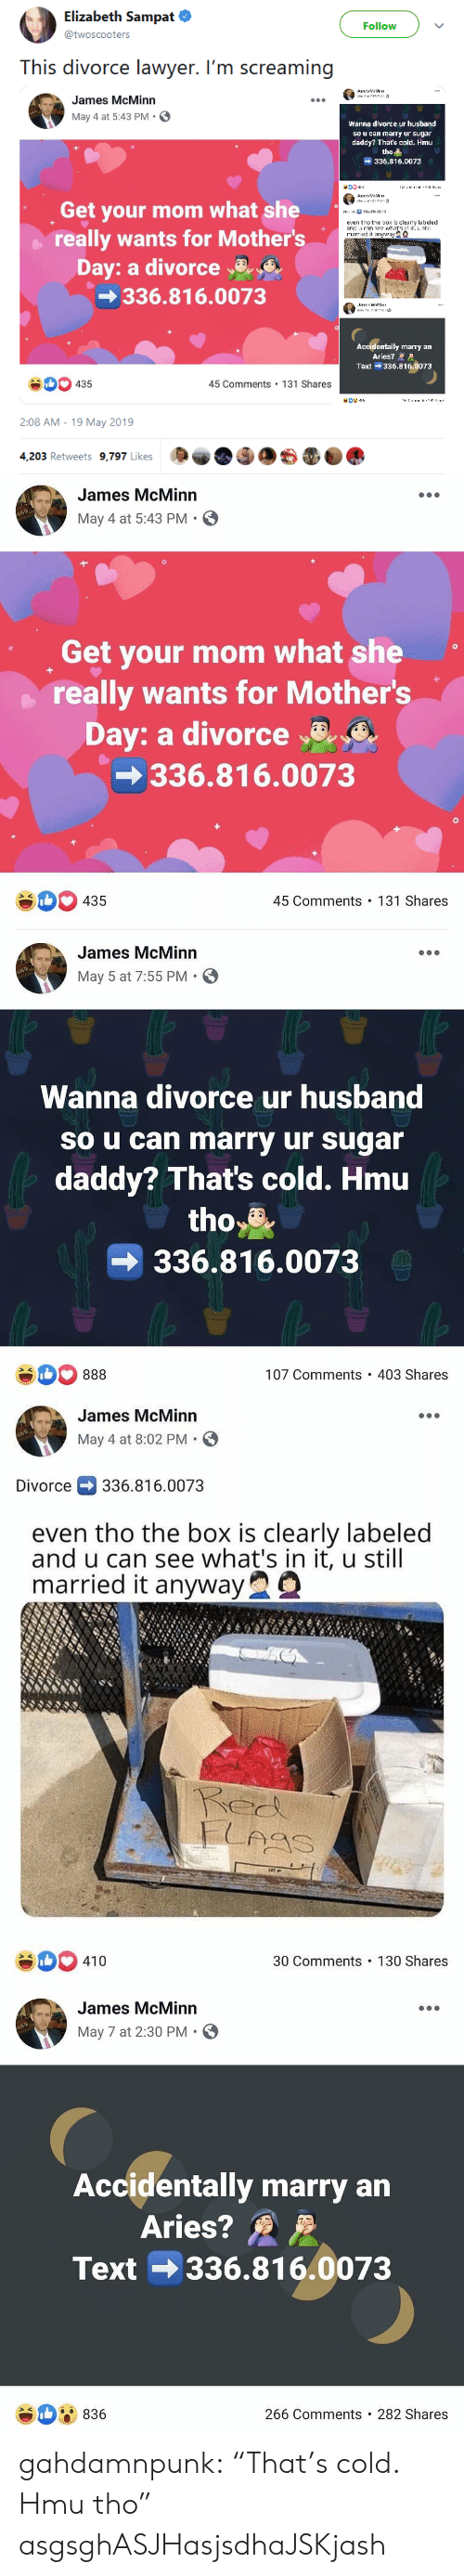 "Lawyer, Mother's Day, and Tumblr: Elizabeth Sampat  Follow  @twoscooters  This divorce lawyer. I'm screaming  James McMinn  May 4 at 5:43 PM.  Wanna dlvorce ur husband  so u can marry ur sugar  daddy? That's cold. Hmu  ャ  tho  336.816.0073  Get your mom what she  even tho te  clealebeled  really wants for Mother's  Day: a divorceaE  336.816.0073  lly marry an  Aries? A  Text 336.816.0073  Ac  0435  45 Comments 131 Shares  2:08 AM -19 May 2019  4,203 Retweets 9,797 Likes   James McMinn  May 4 at 5:43 PM.  Get your mom what she  really wants for Mother's  Day: a divorce  336.816.0073  #00 435  45 Comments 131 Shares   James McMinn  May 5 at 7:55 PM  Wanna divorce ur husband  so u can marry ur sugar  daddy? That's cold. Hmu  tho*  336.816.0073  107 Comments 403 Shares   James McMinn  May 4 at 8:02 PM.  Divorce336.816.0073  even tho the box is clearly labeled  and u can see what's in it, u still  married it anywayQ  xNx  30 Comments 130 Shares  410   James McMinn  May 7 at 2:30 PM S  Accidentally marry an  Aries?  Text 336.816.0073  836  266 Comments 282 Shares gahdamnpunk:  ""That's cold. Hmu tho"" asgsghASJHasjsdhaJSKjash"